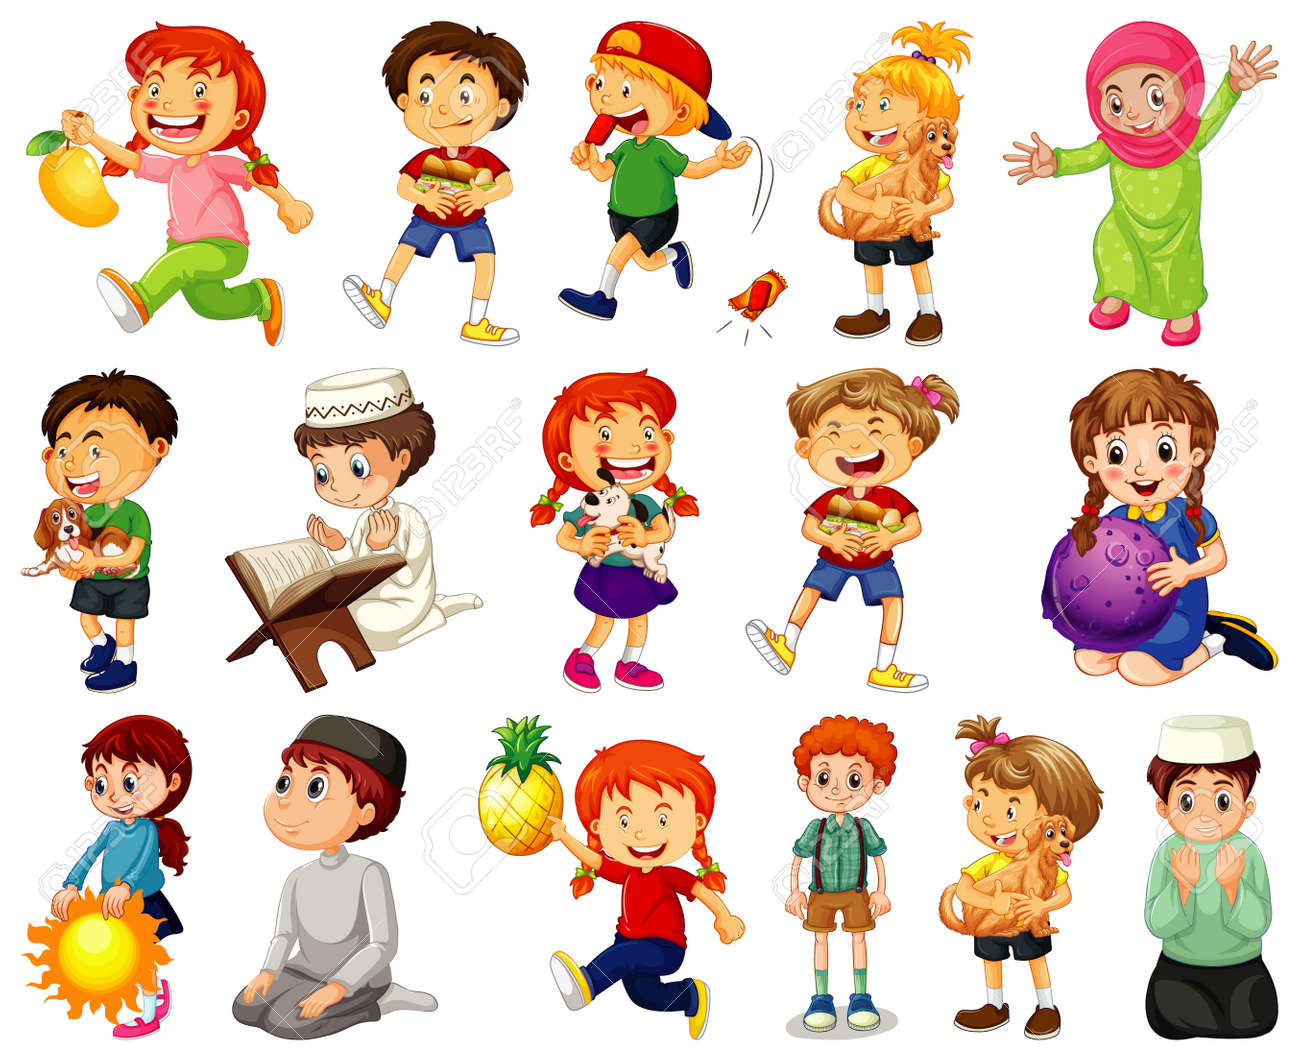 Children doing different activities cartoon character set on white background illustration - 169554931